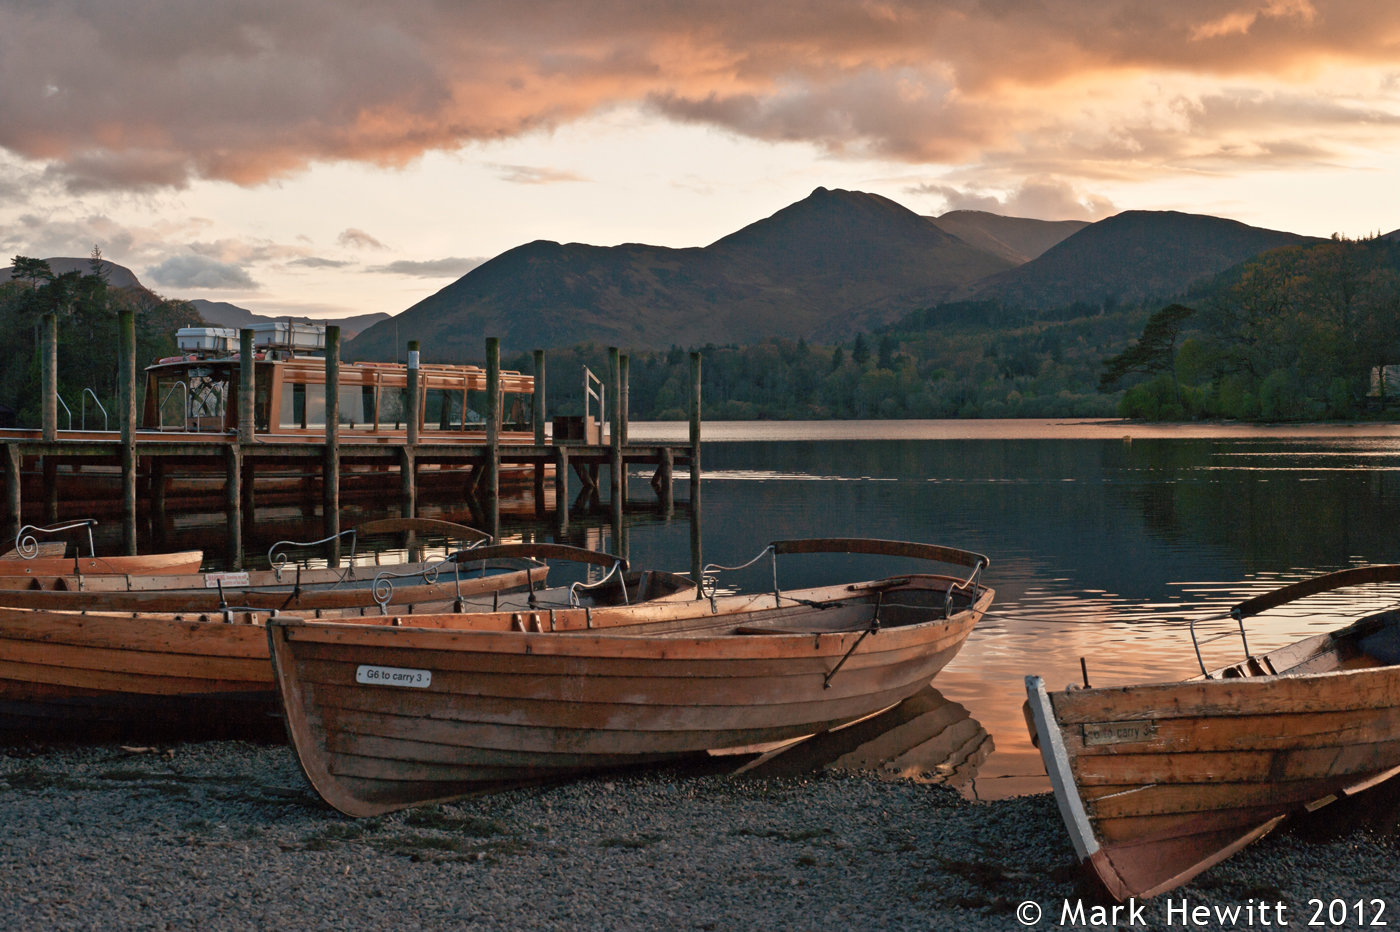 Sunset Sky Over Derwentwater Rowing Boats